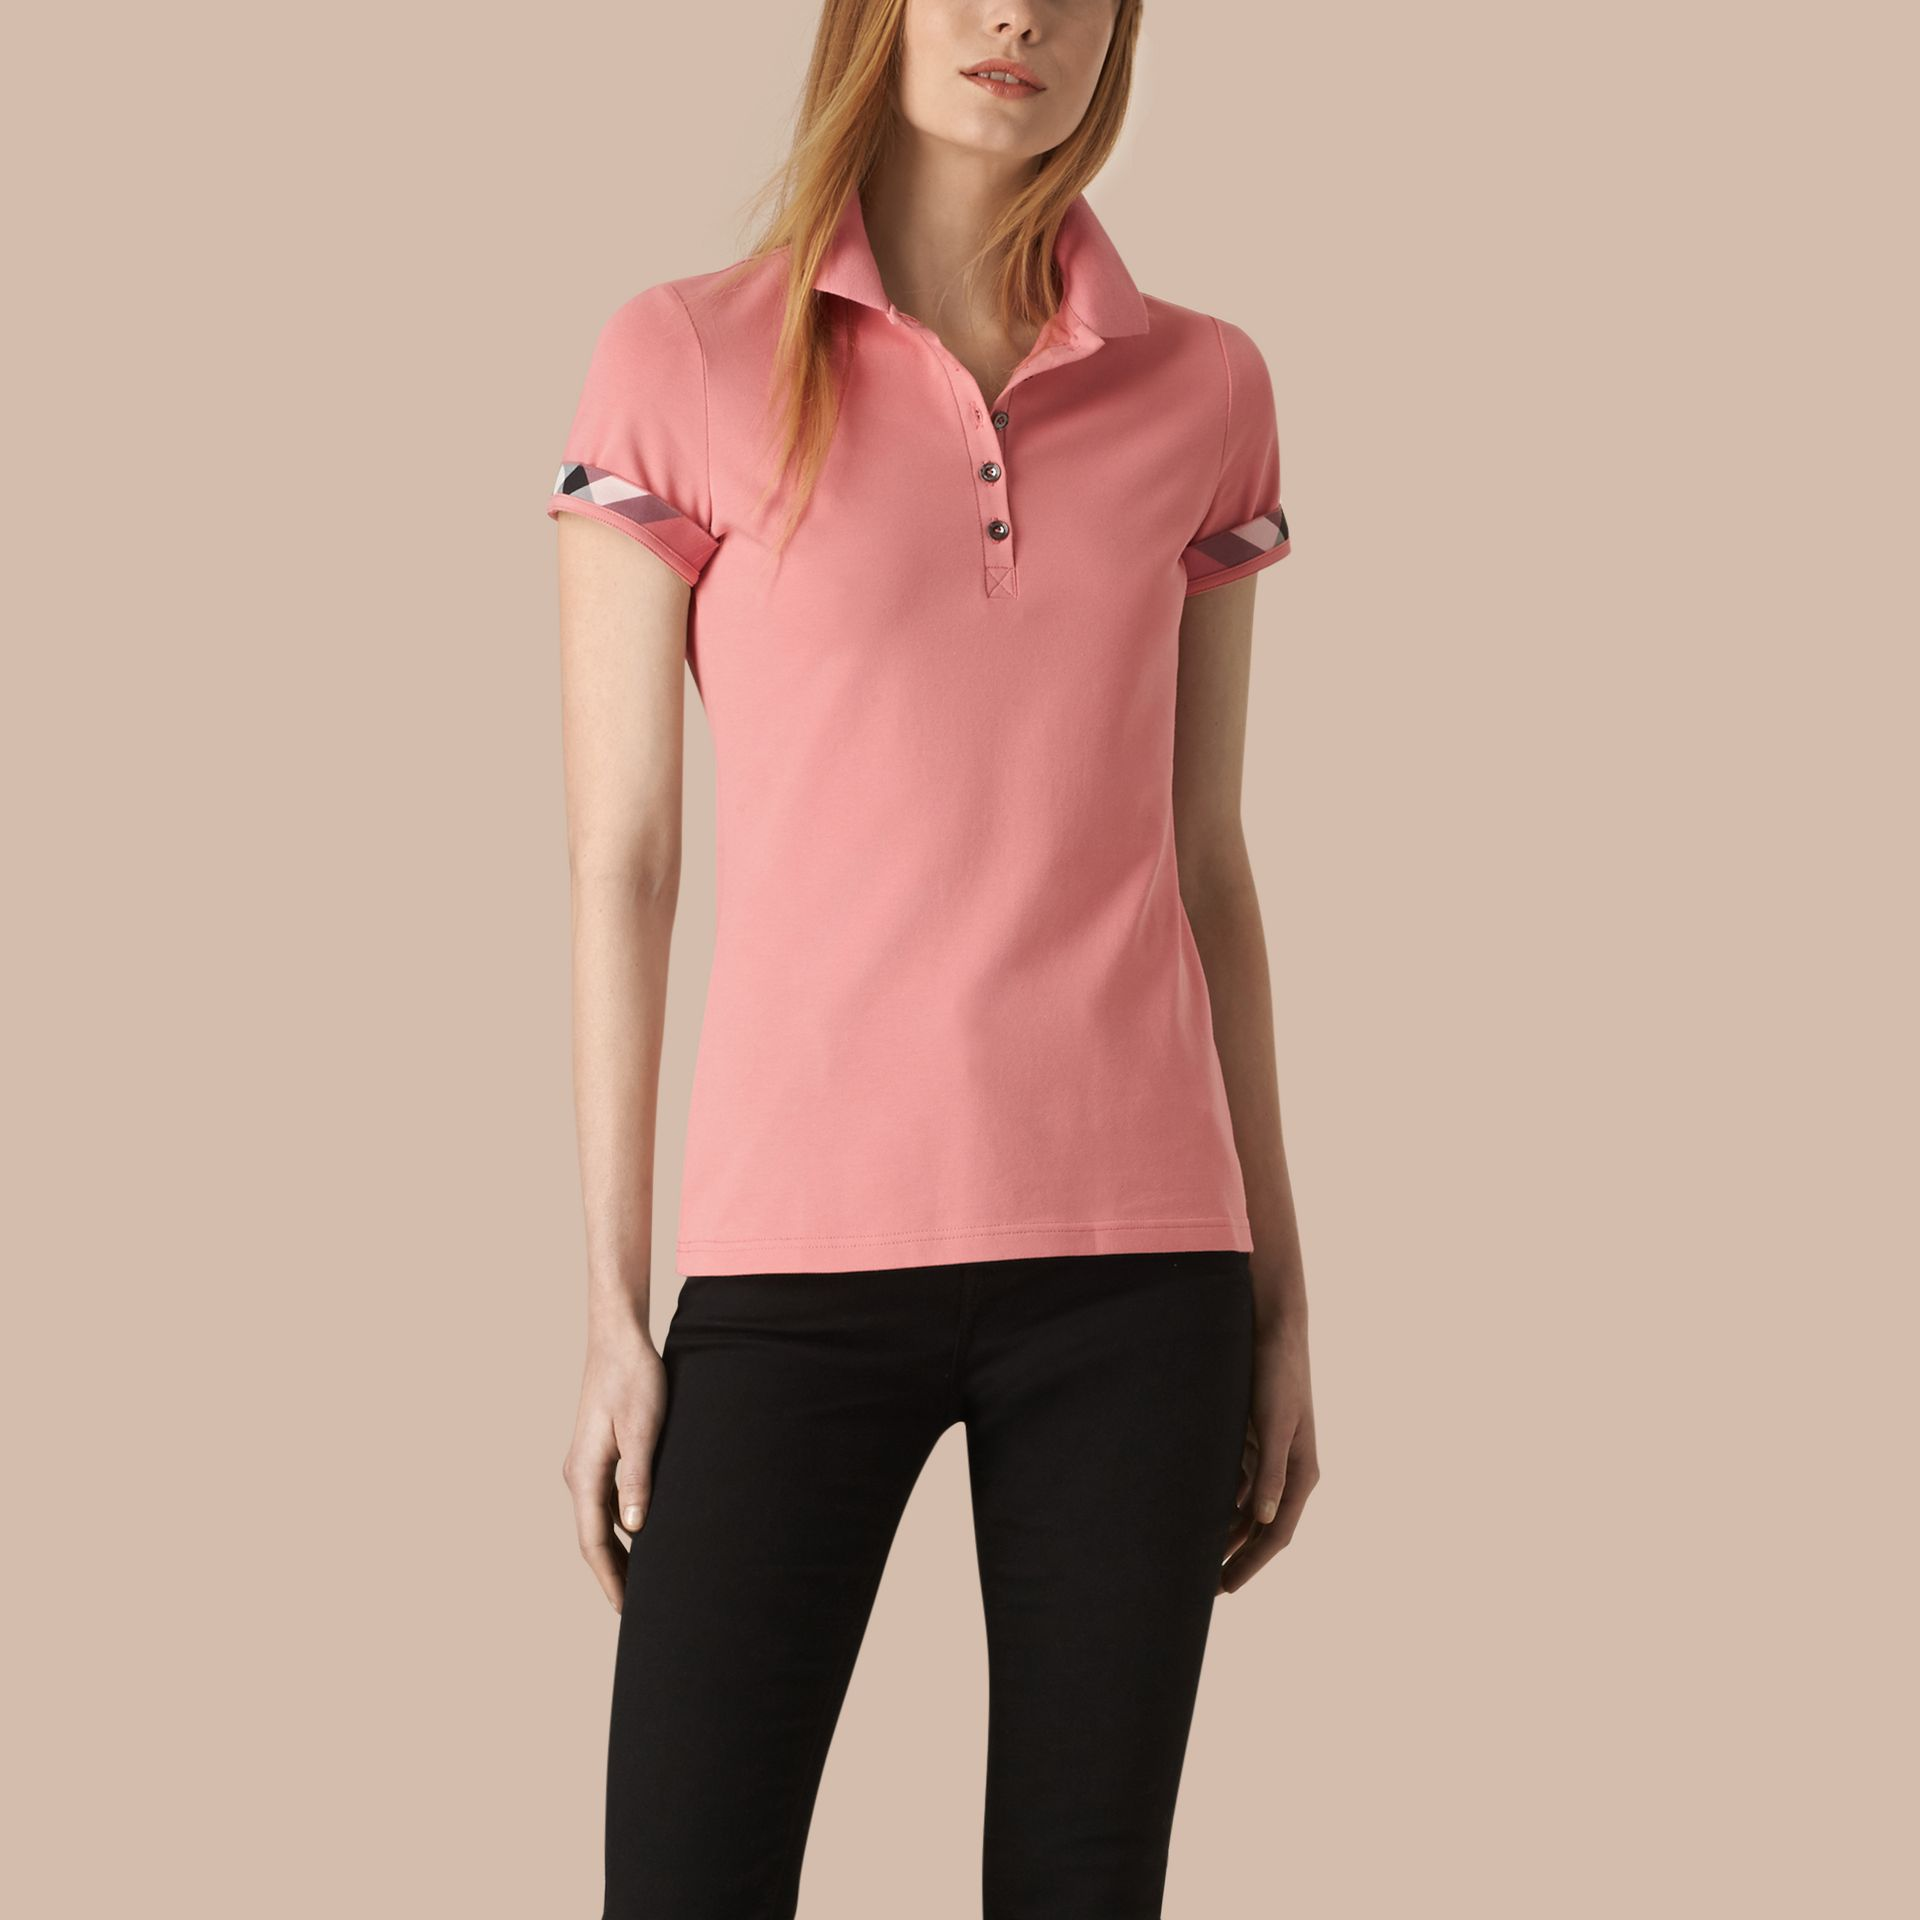 Carnation pink Check Trim Stretch Cotton Piqué Polo Shirt Carnation Pink - gallery image 1